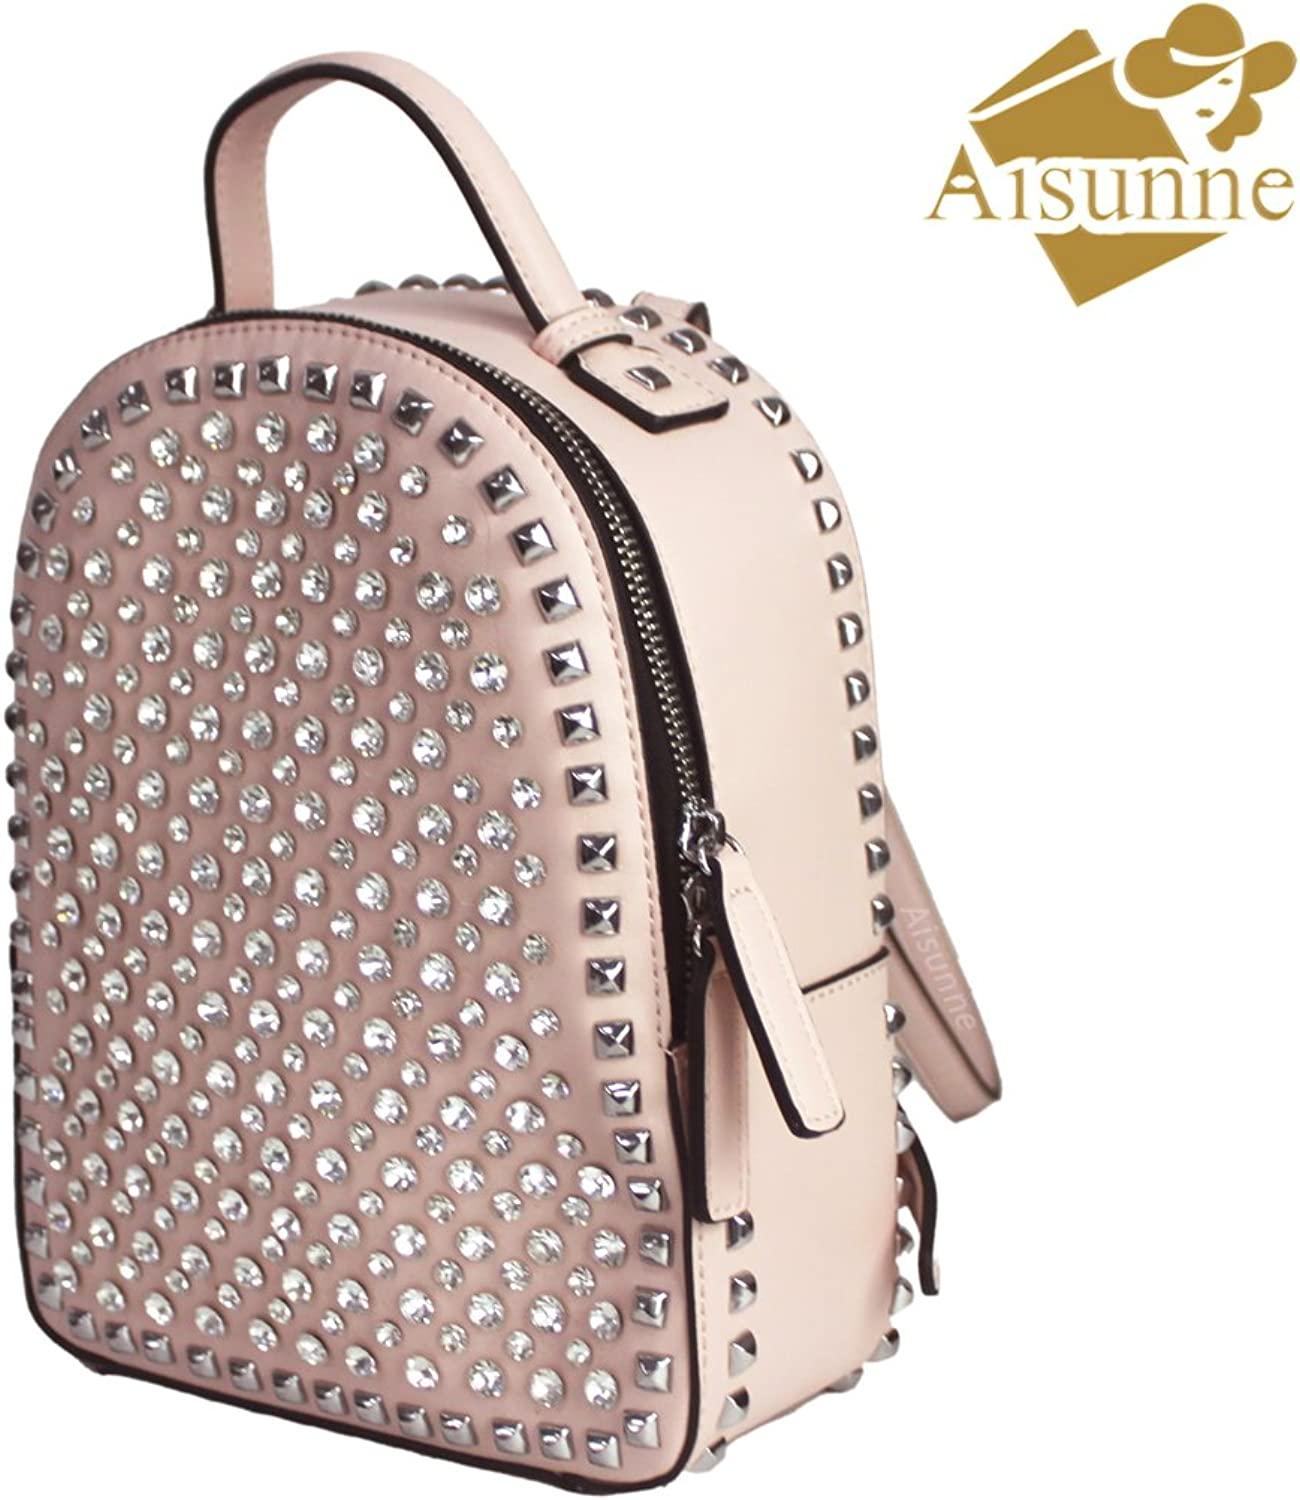 Aisunne Mini Backpack Handbags With Rivets Glitter Rhinestone For Girls Women Ladies Fashion Leather Small Shoulder Backpacks